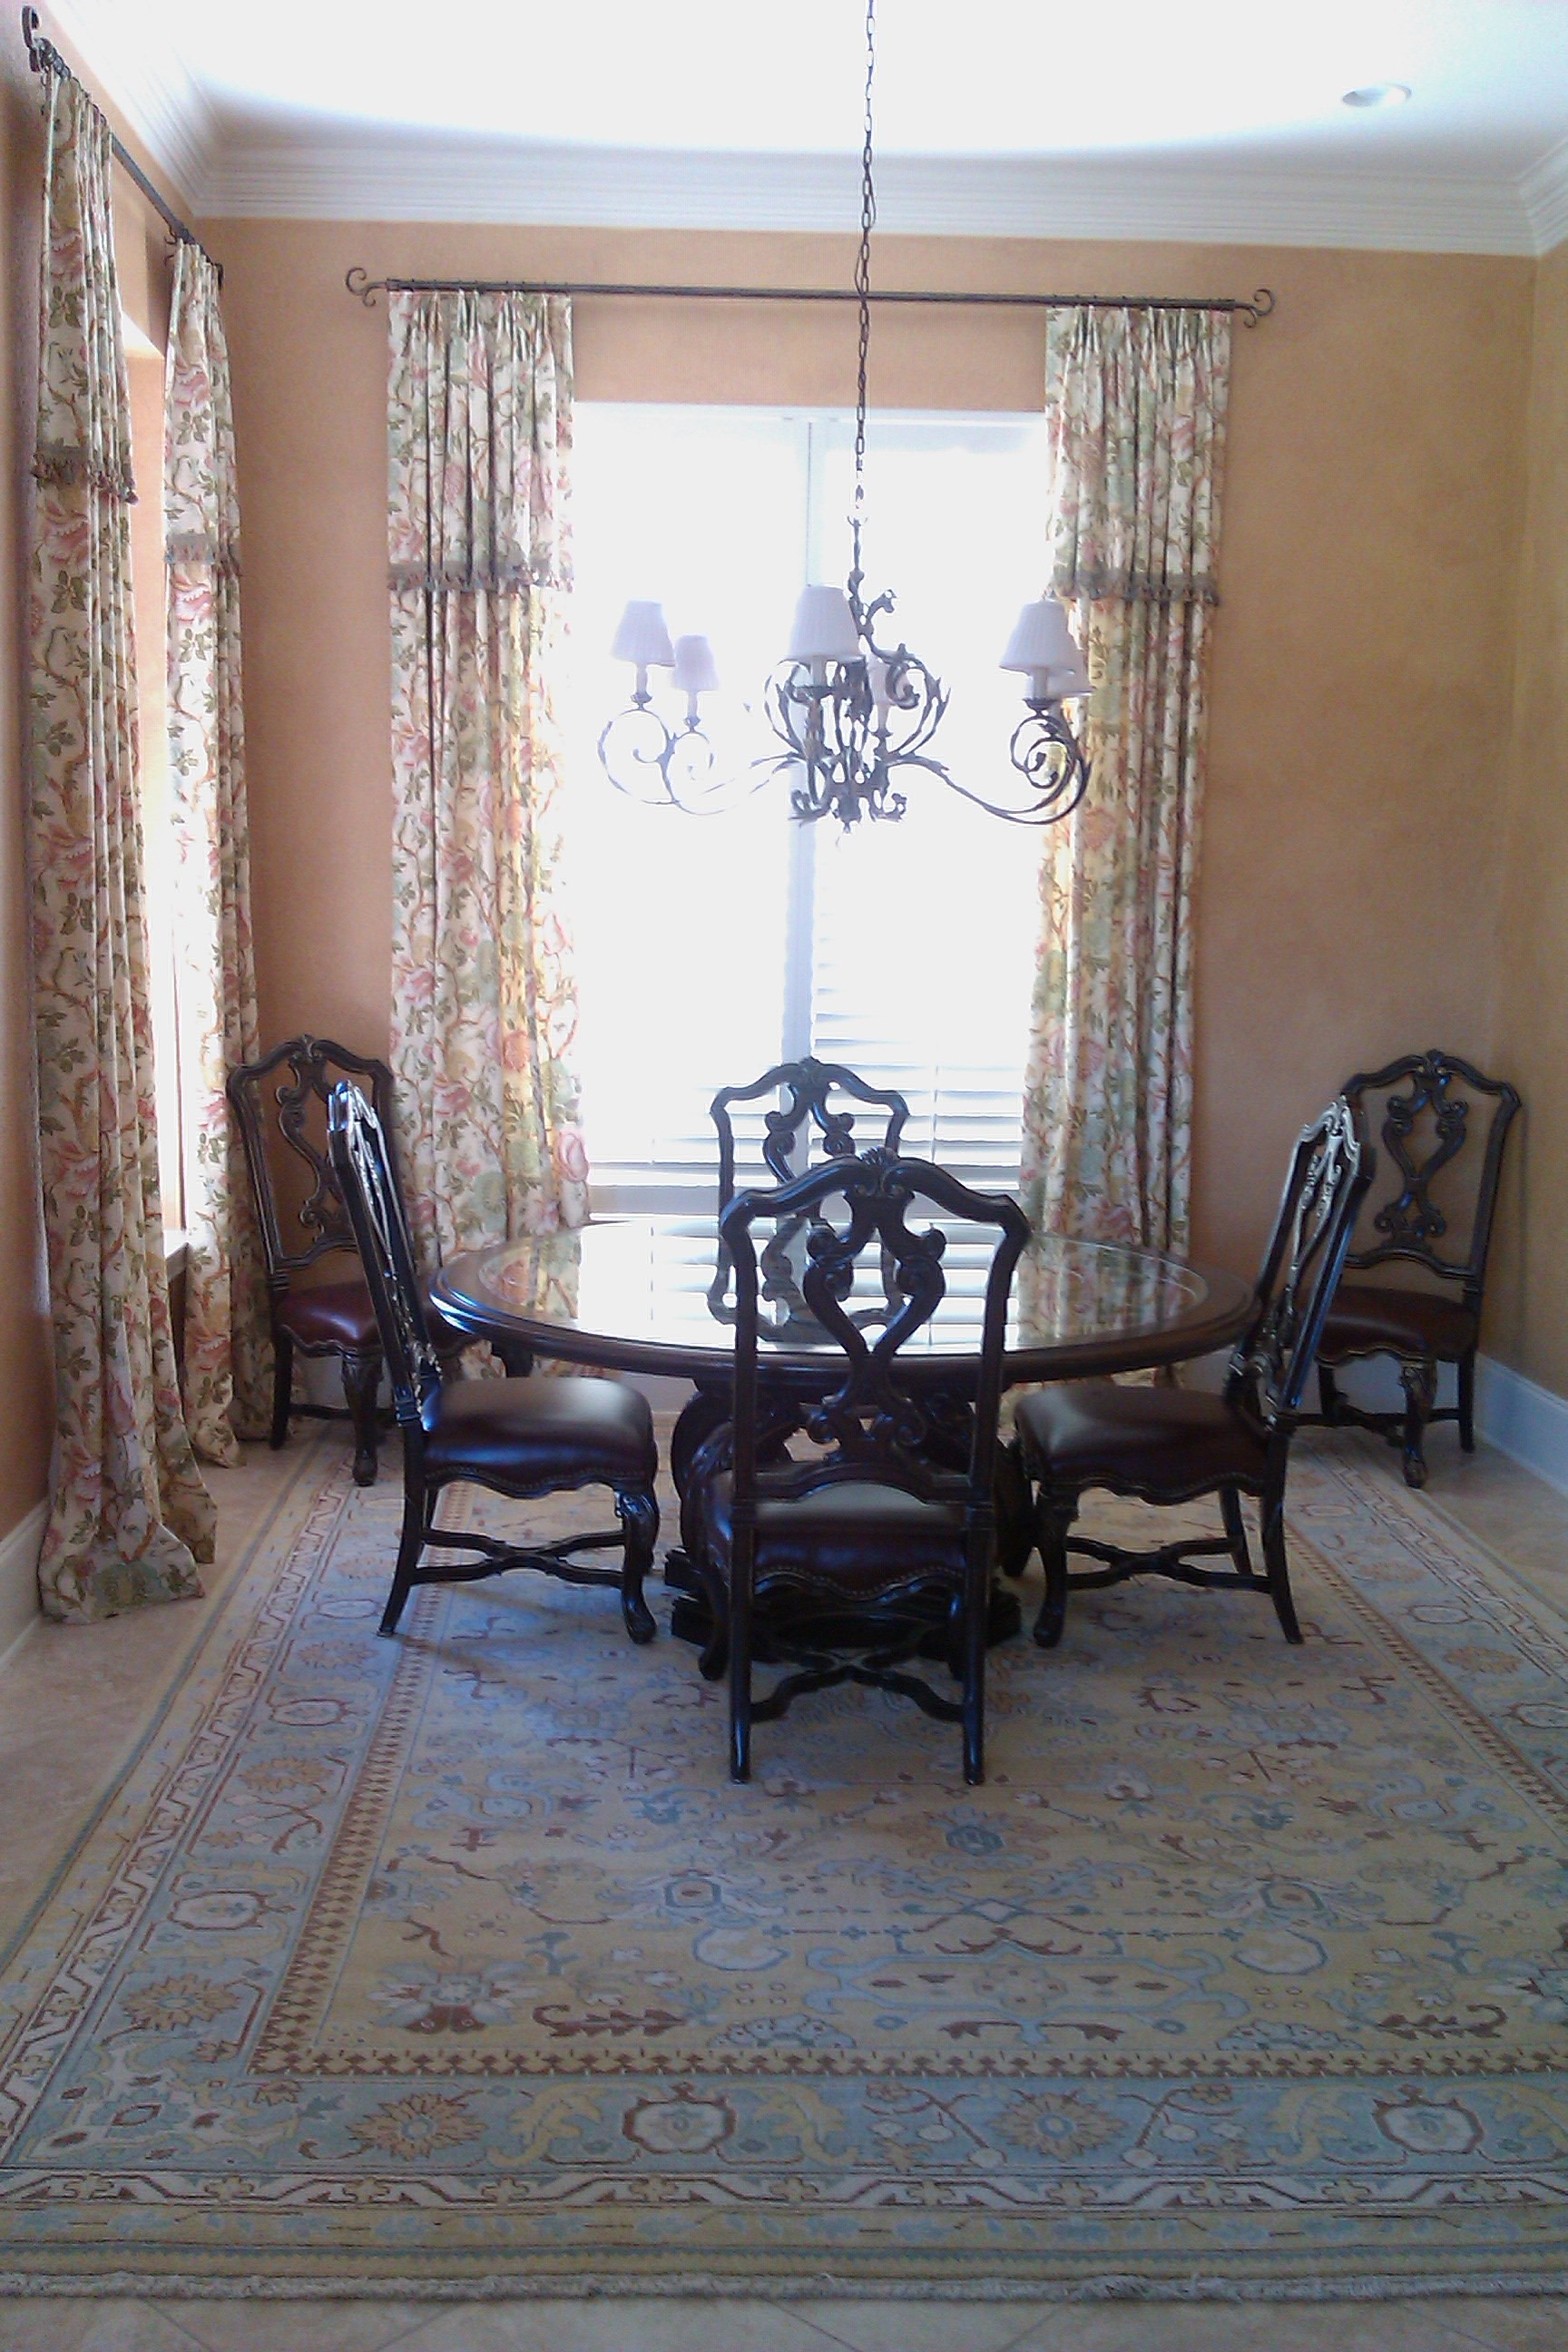 Dining Room Italian Style with Glazed Walls | Flickr - Photo Sharing!